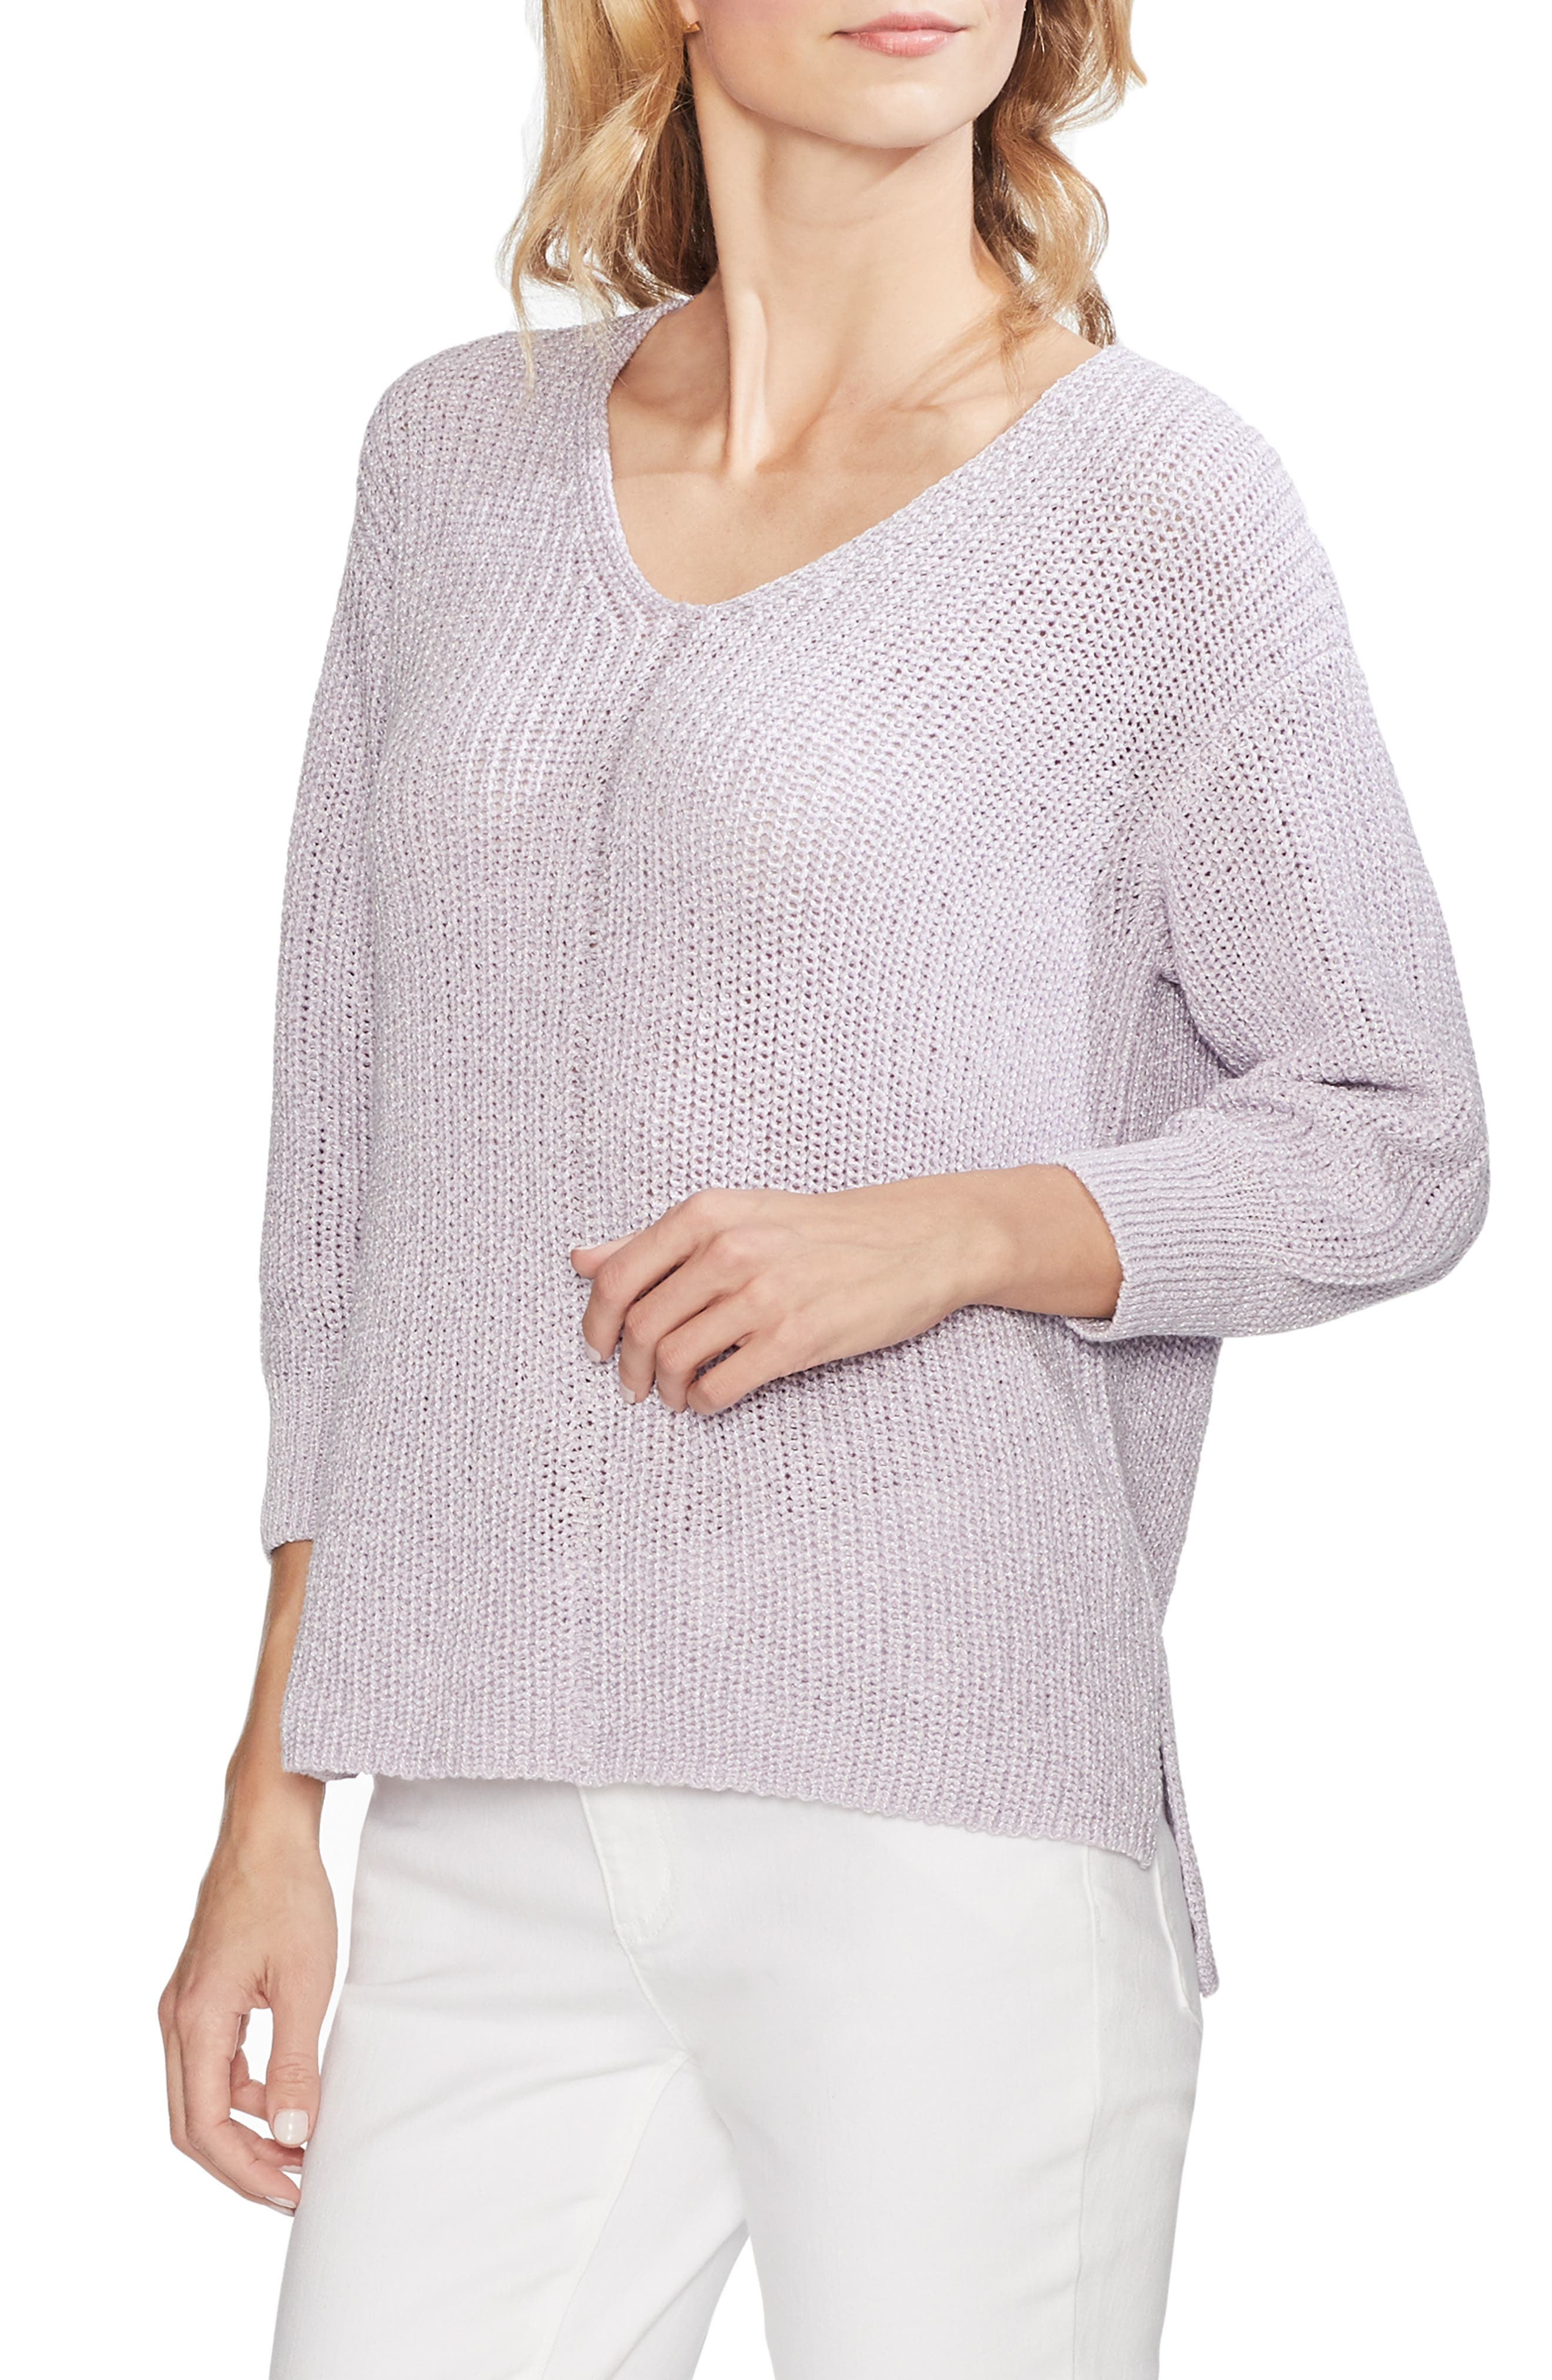 Vince Camuto Tops V-NECK MARLED SWEATER